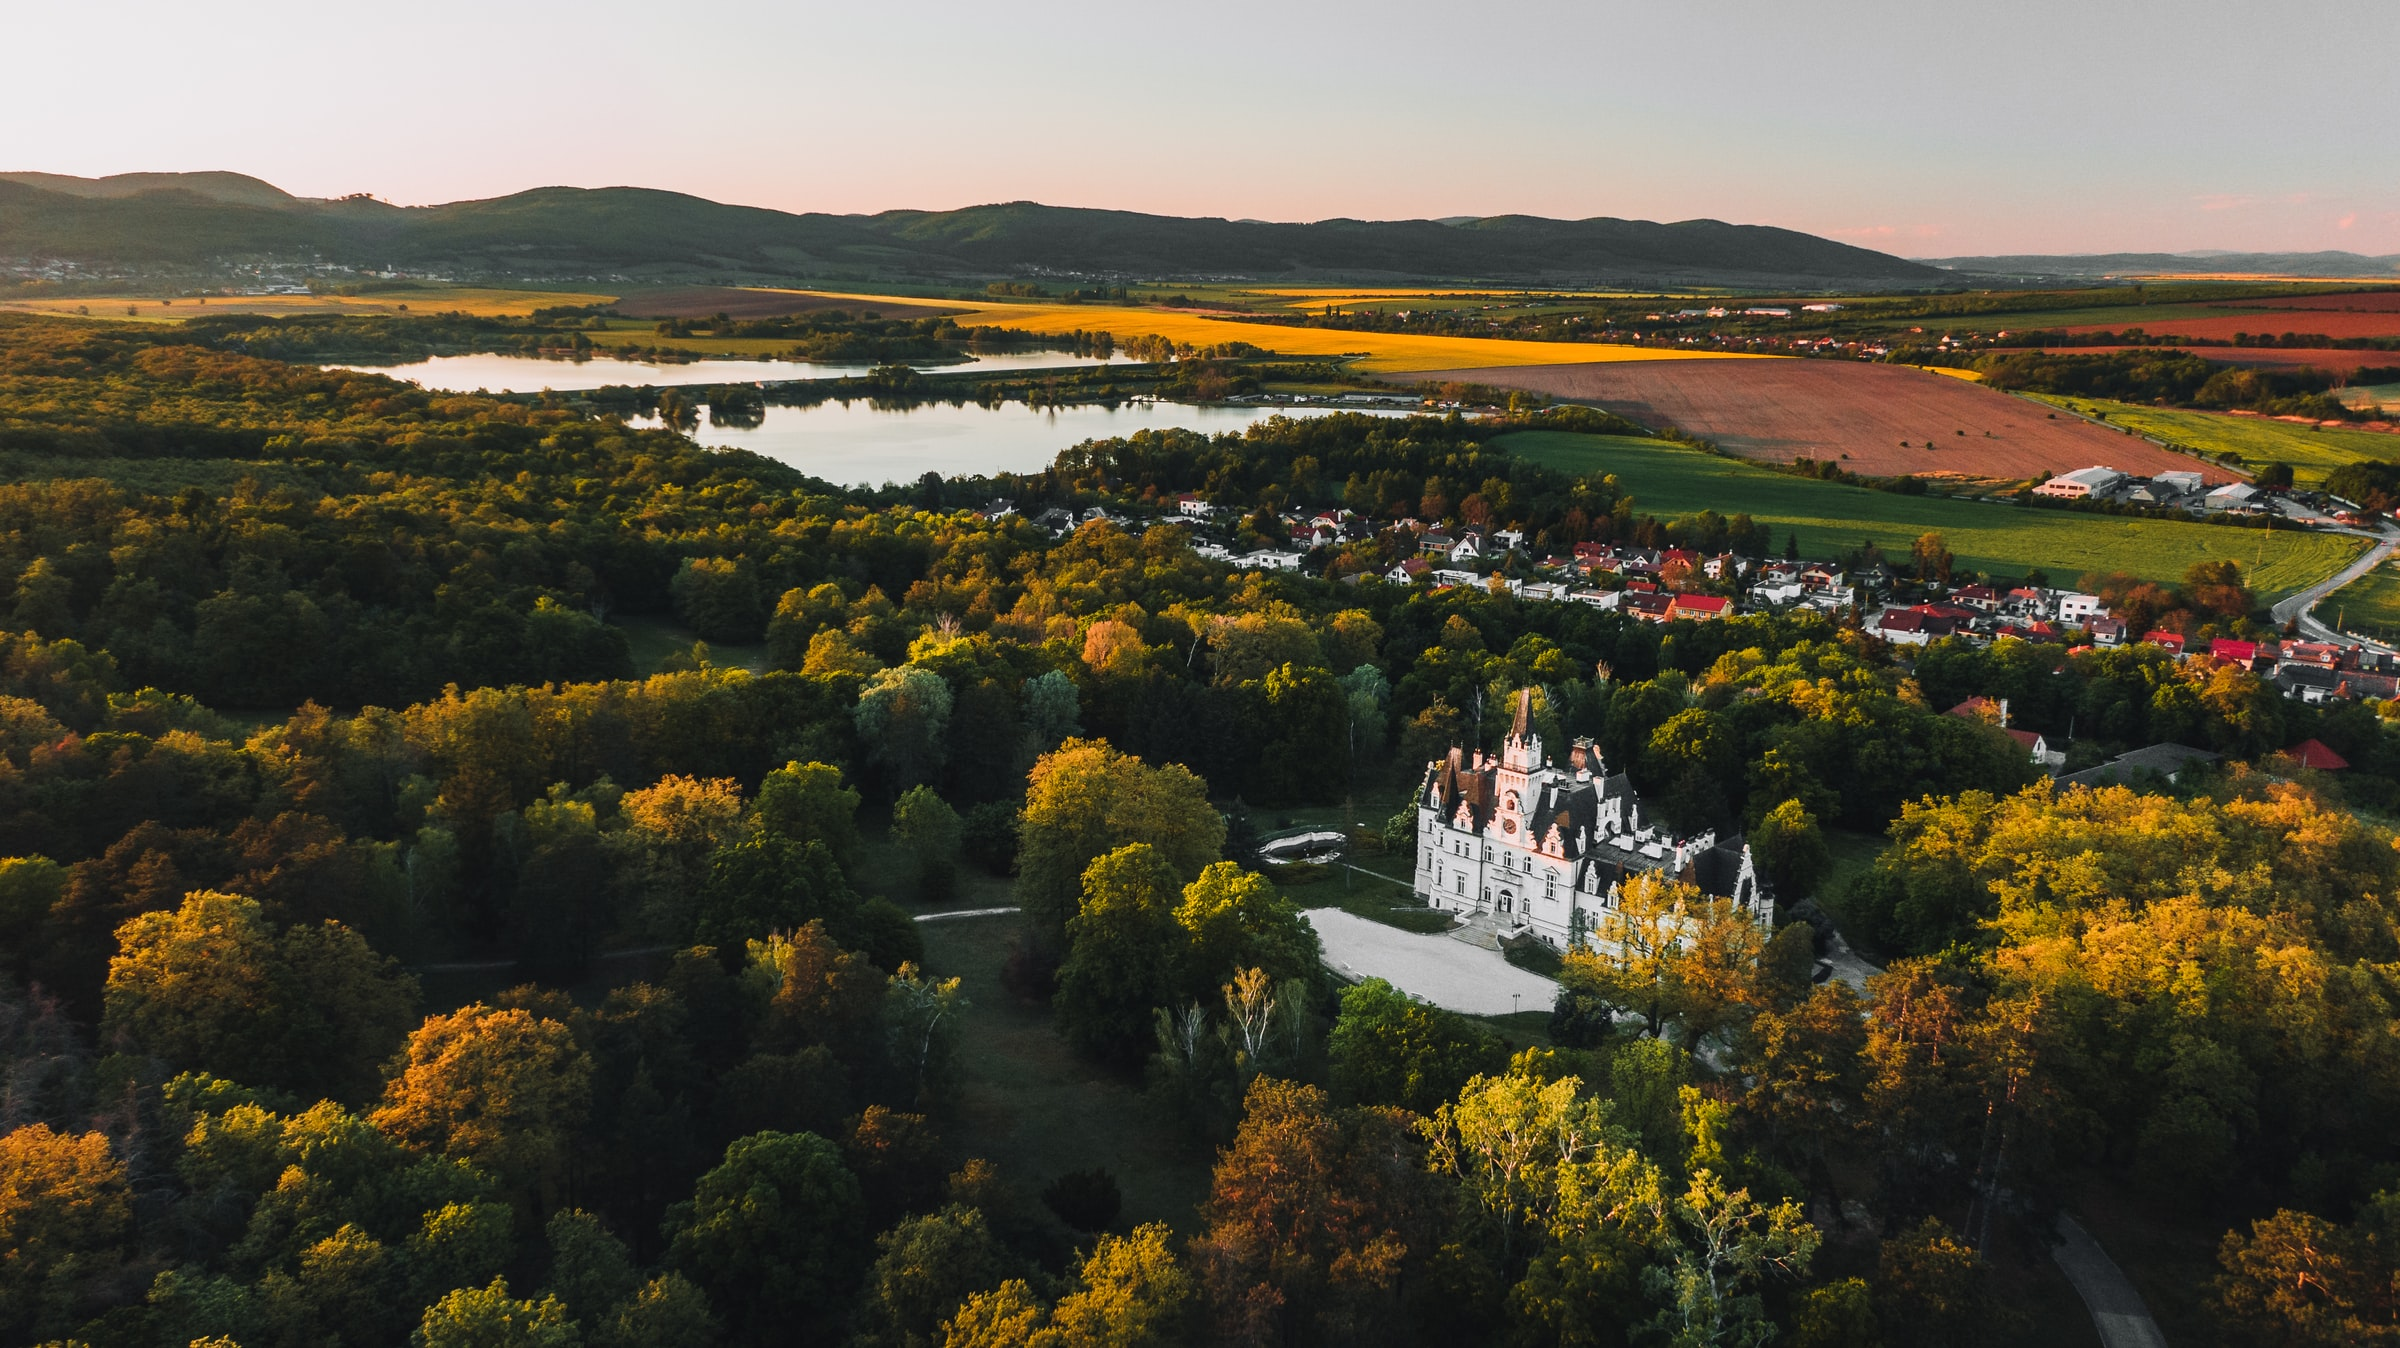 7 Picture Editing Tips to Make Your Real Estate Drone Images Stand Out